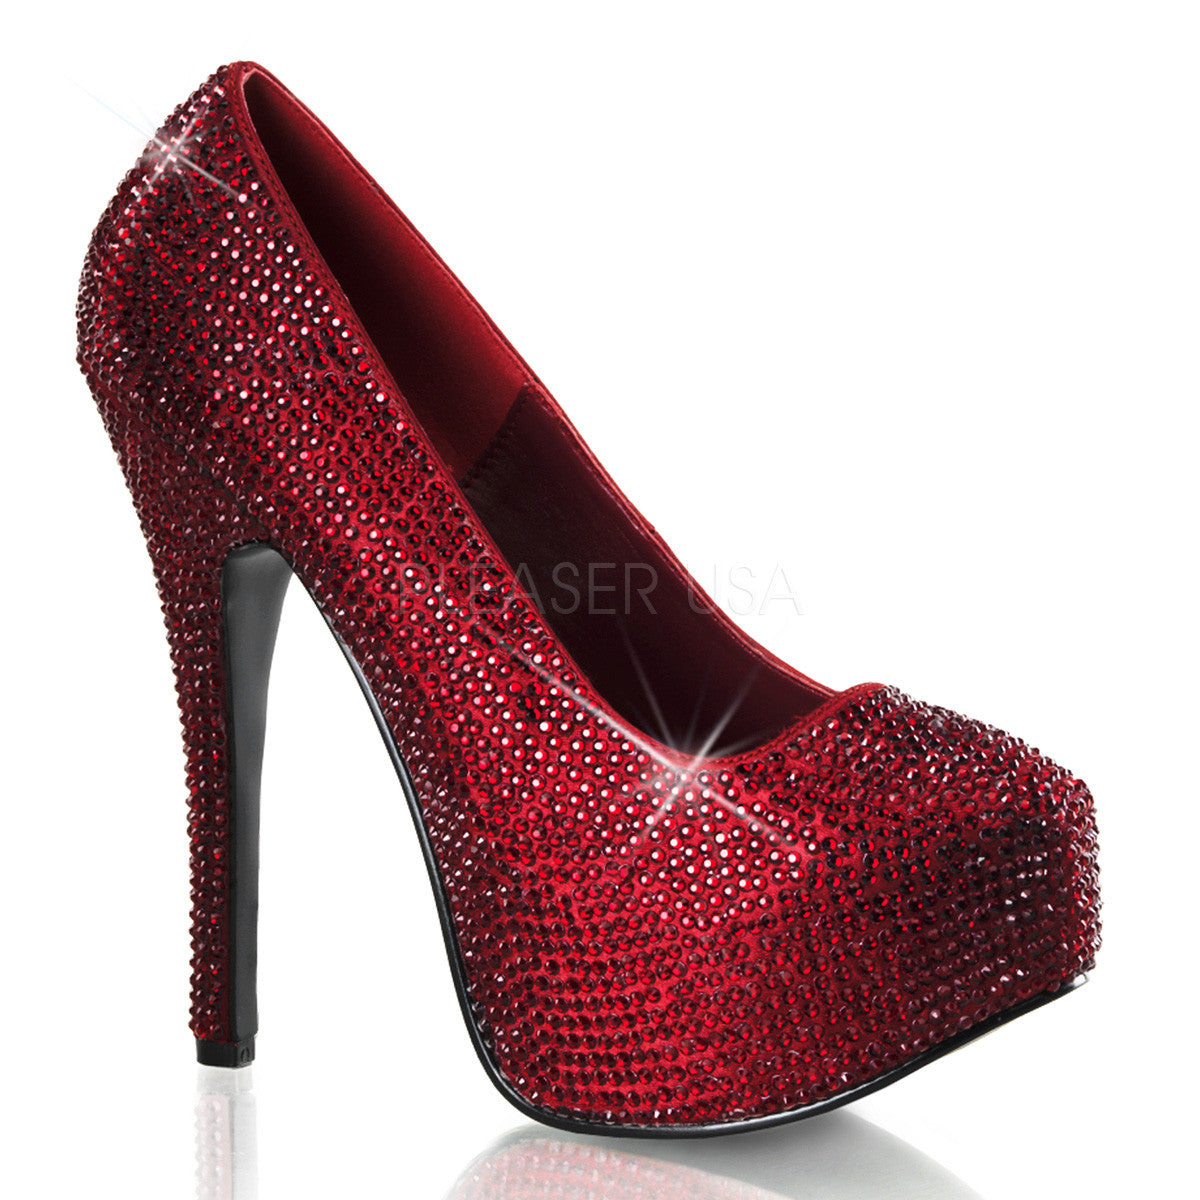 Bordello,Bordello TEEZE-06R Ruby Red Satin Rhinestoned Pumps - Shoecup.com